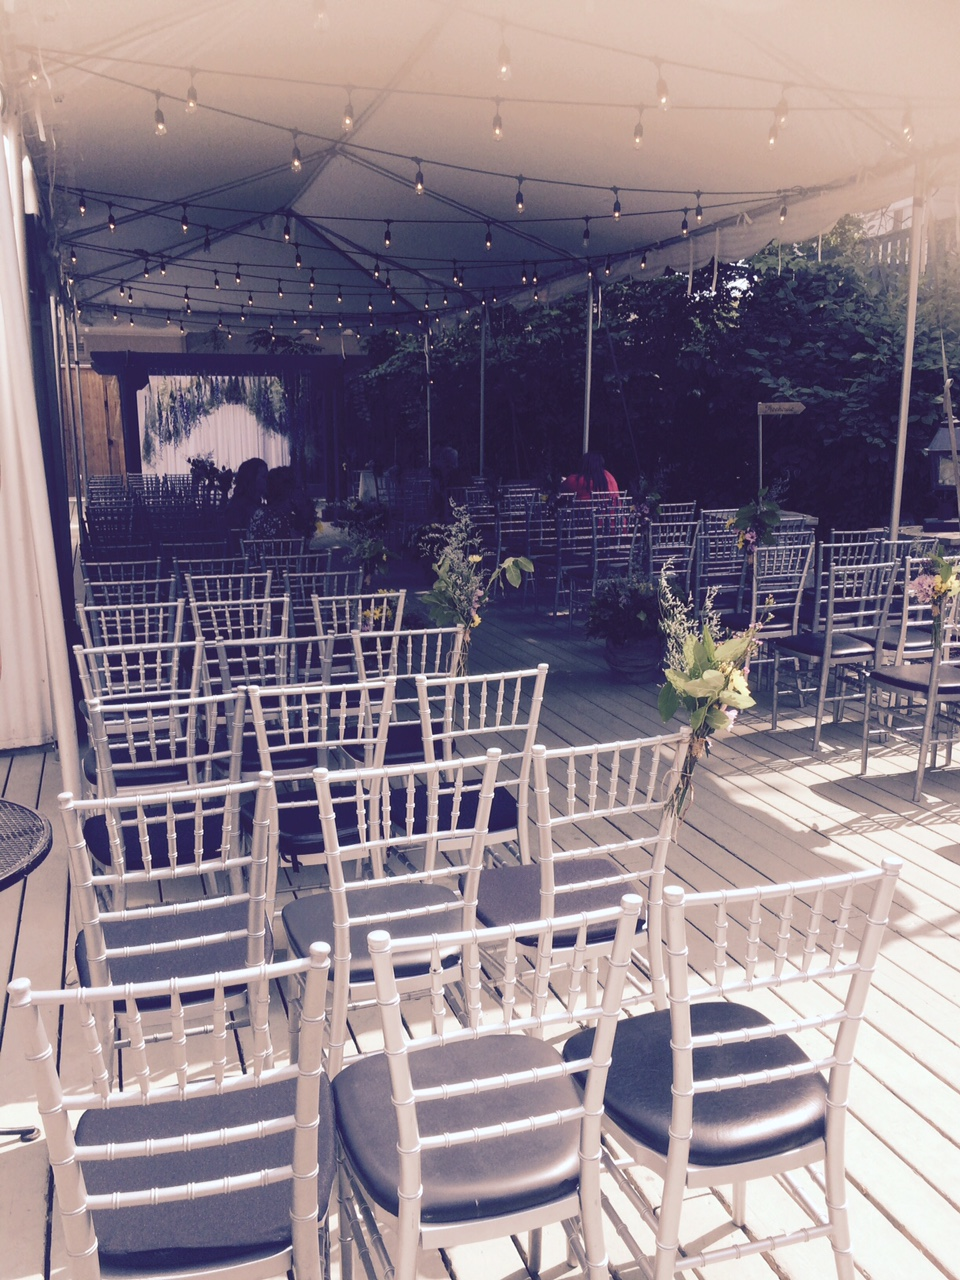 Ceremony Berkeley Feild House Toronto Dj Set up.jpg